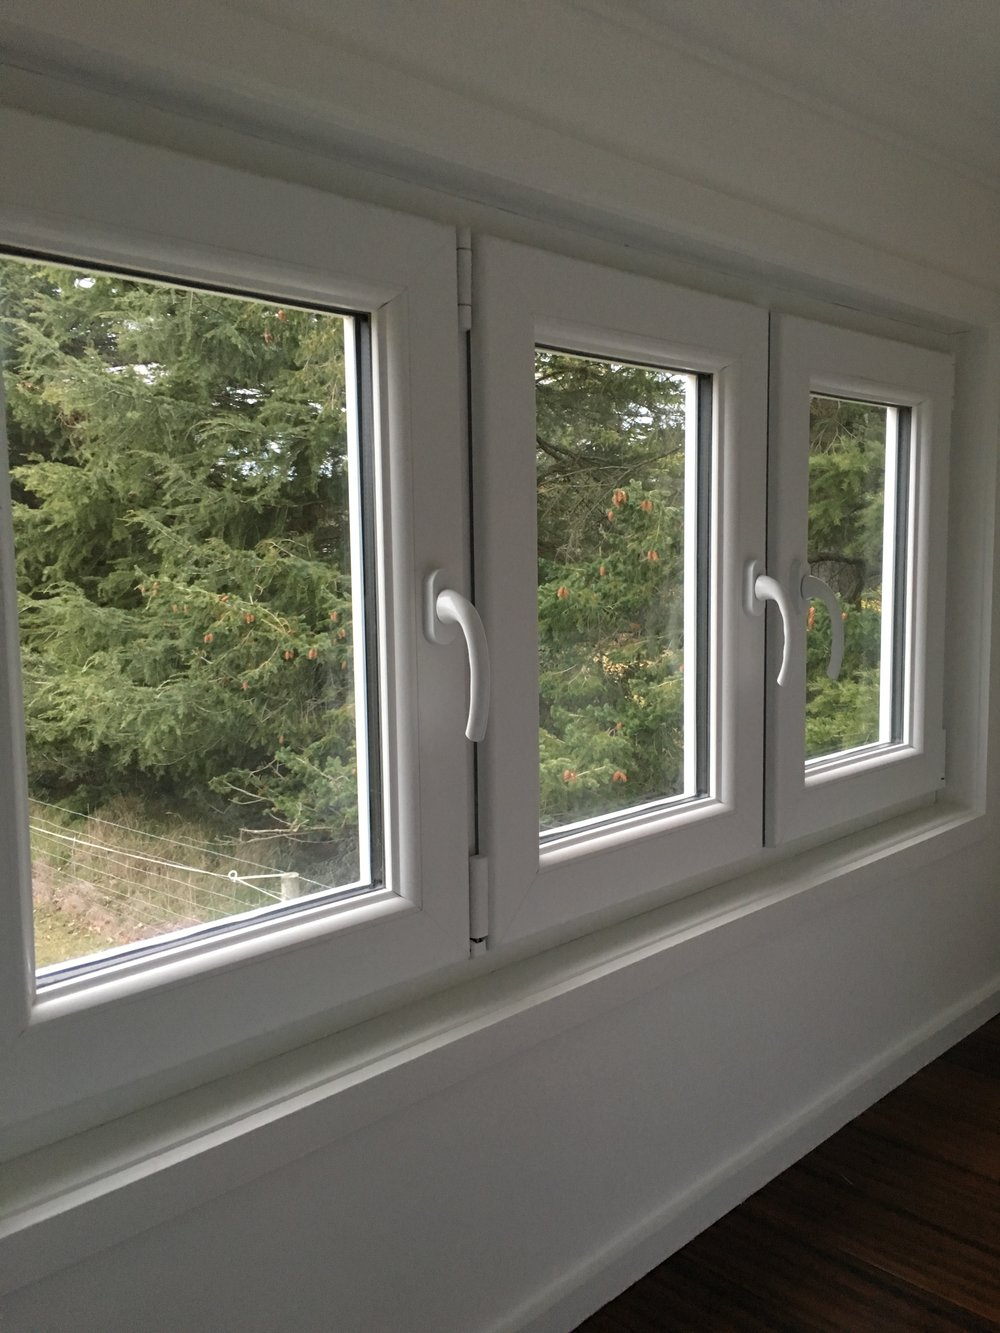 UPVC tilt and turn windows, above the loft of one of our off-grid tiny homes.